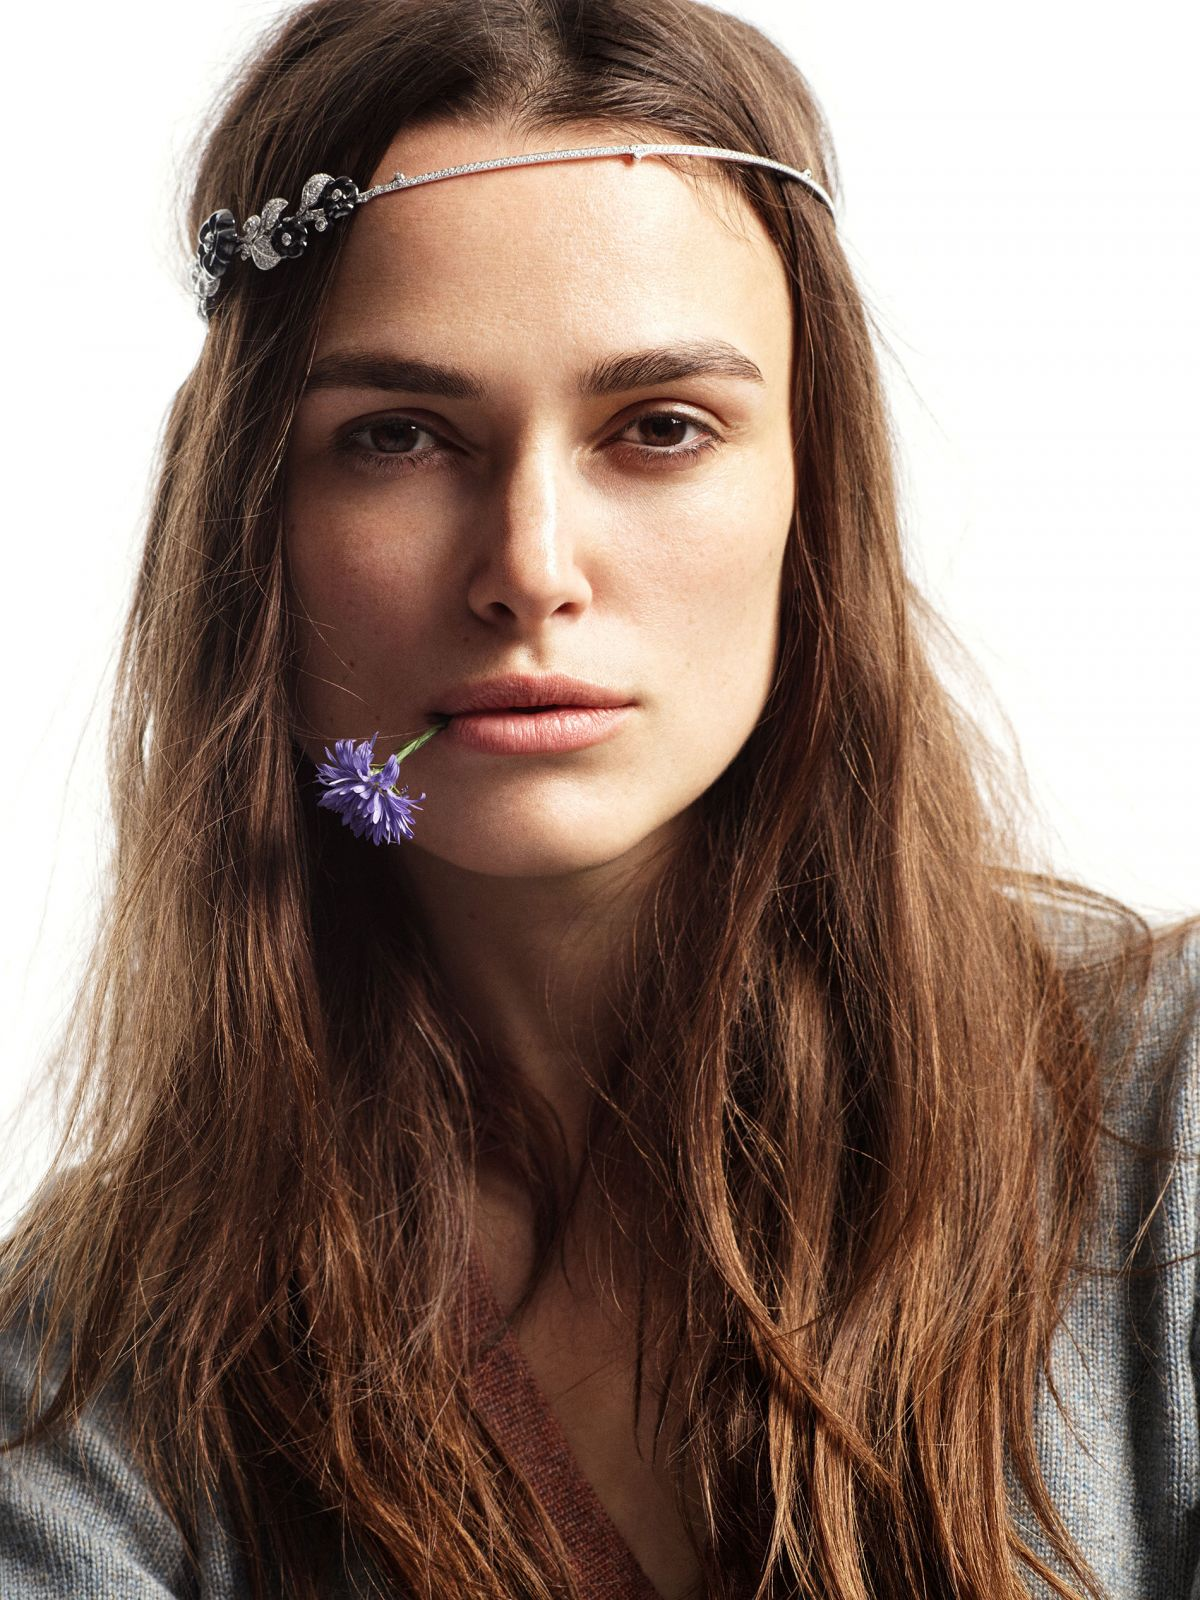 KEIRA KNIGHTLEY for Madame Figaro, July 2016 - HawtCelebs - HawtCelebs Keira Knightley